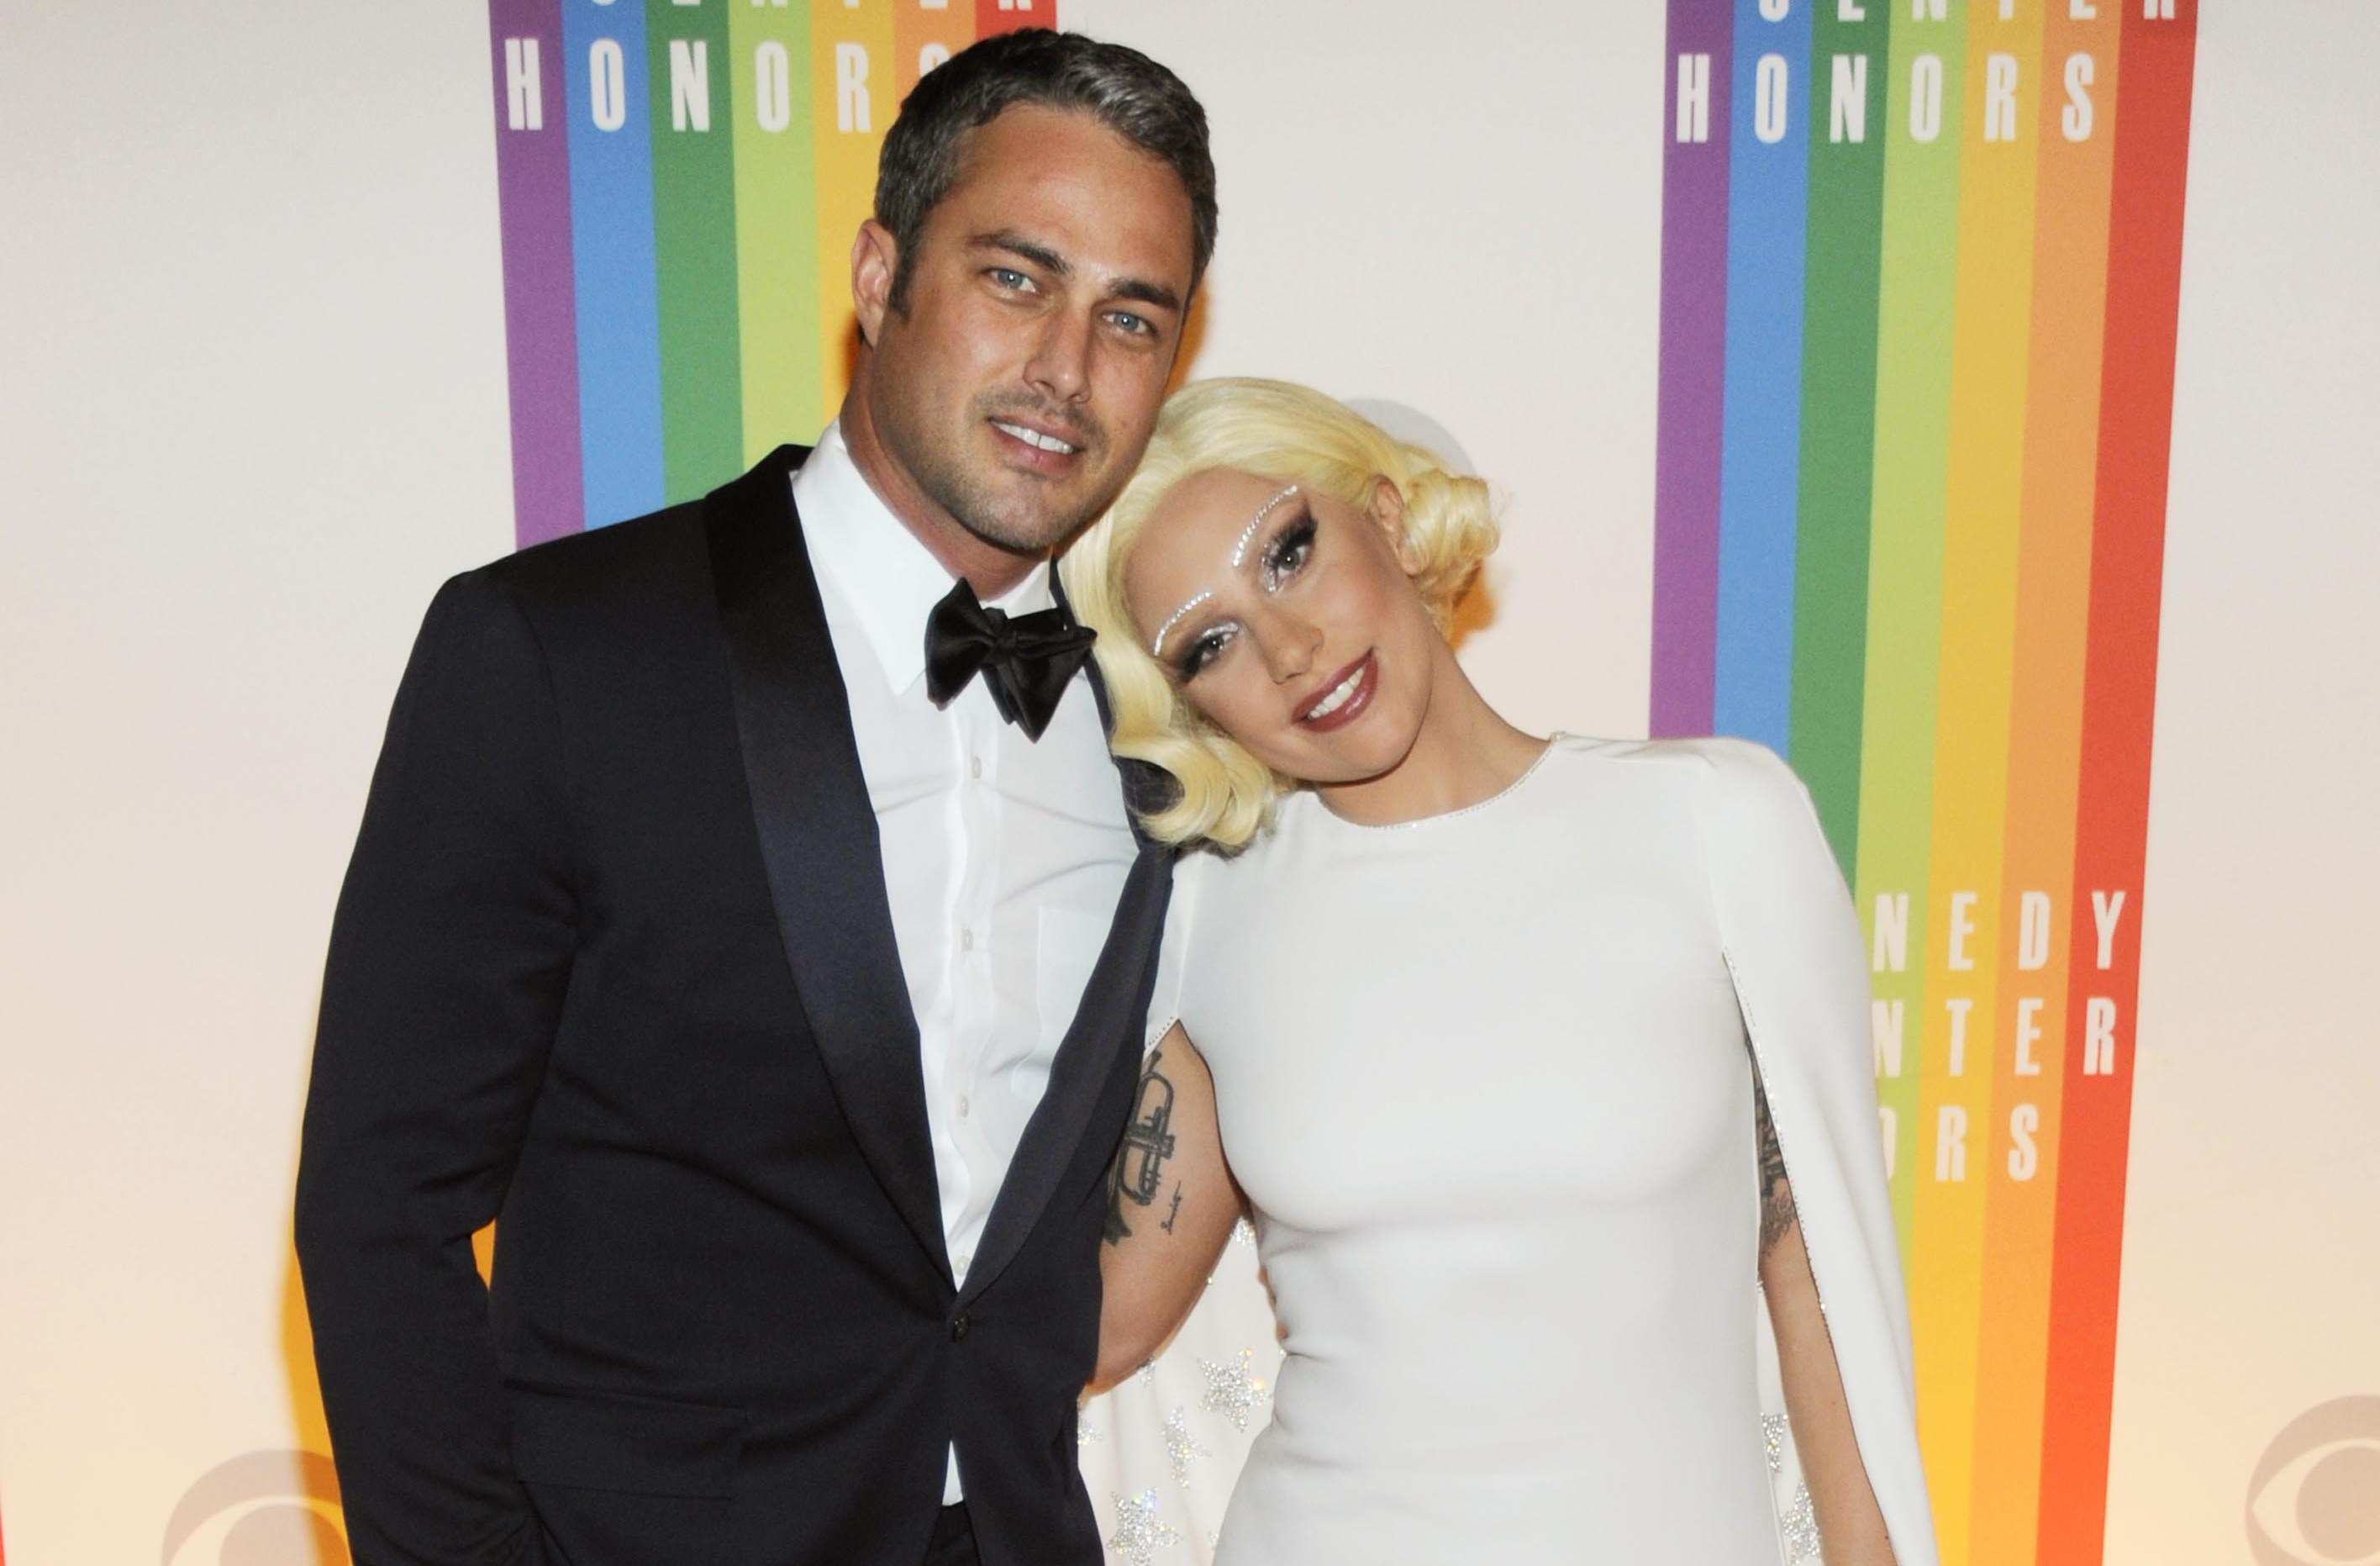 Lady Gaga Engaged